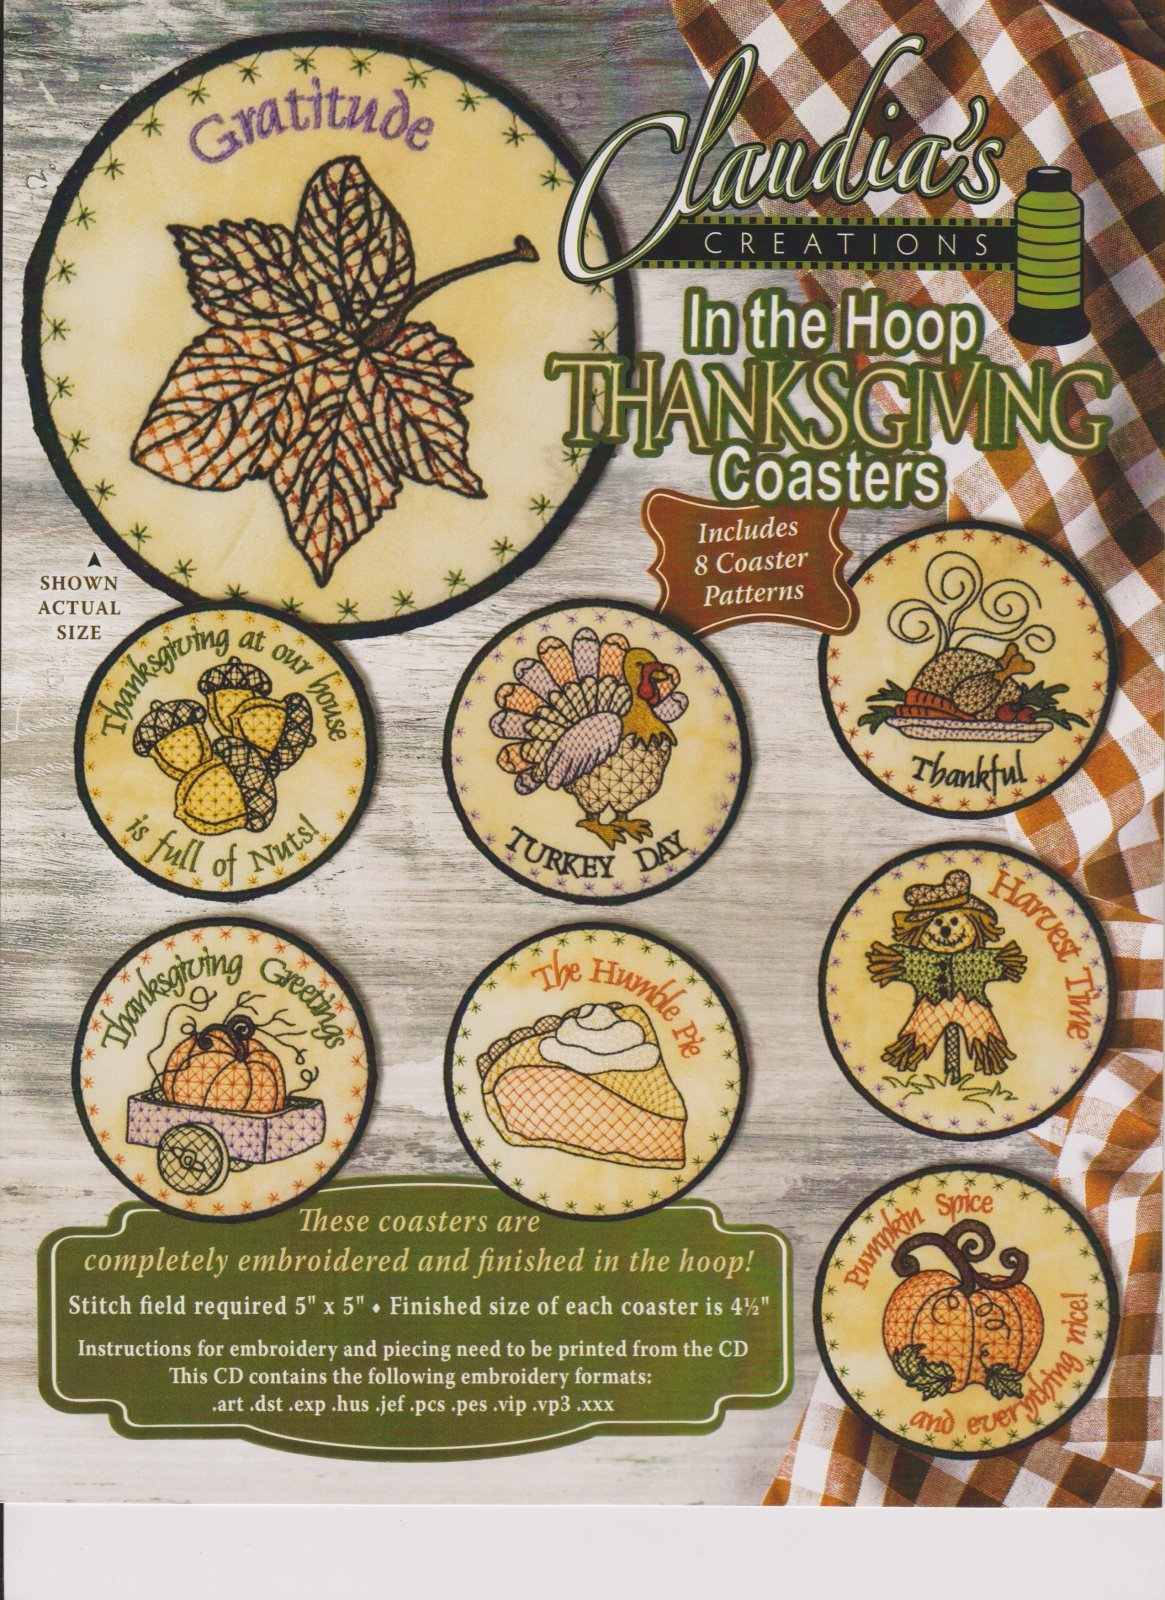 In The Hoop Thanksgiving  Coasters <br> Claudia's Creations